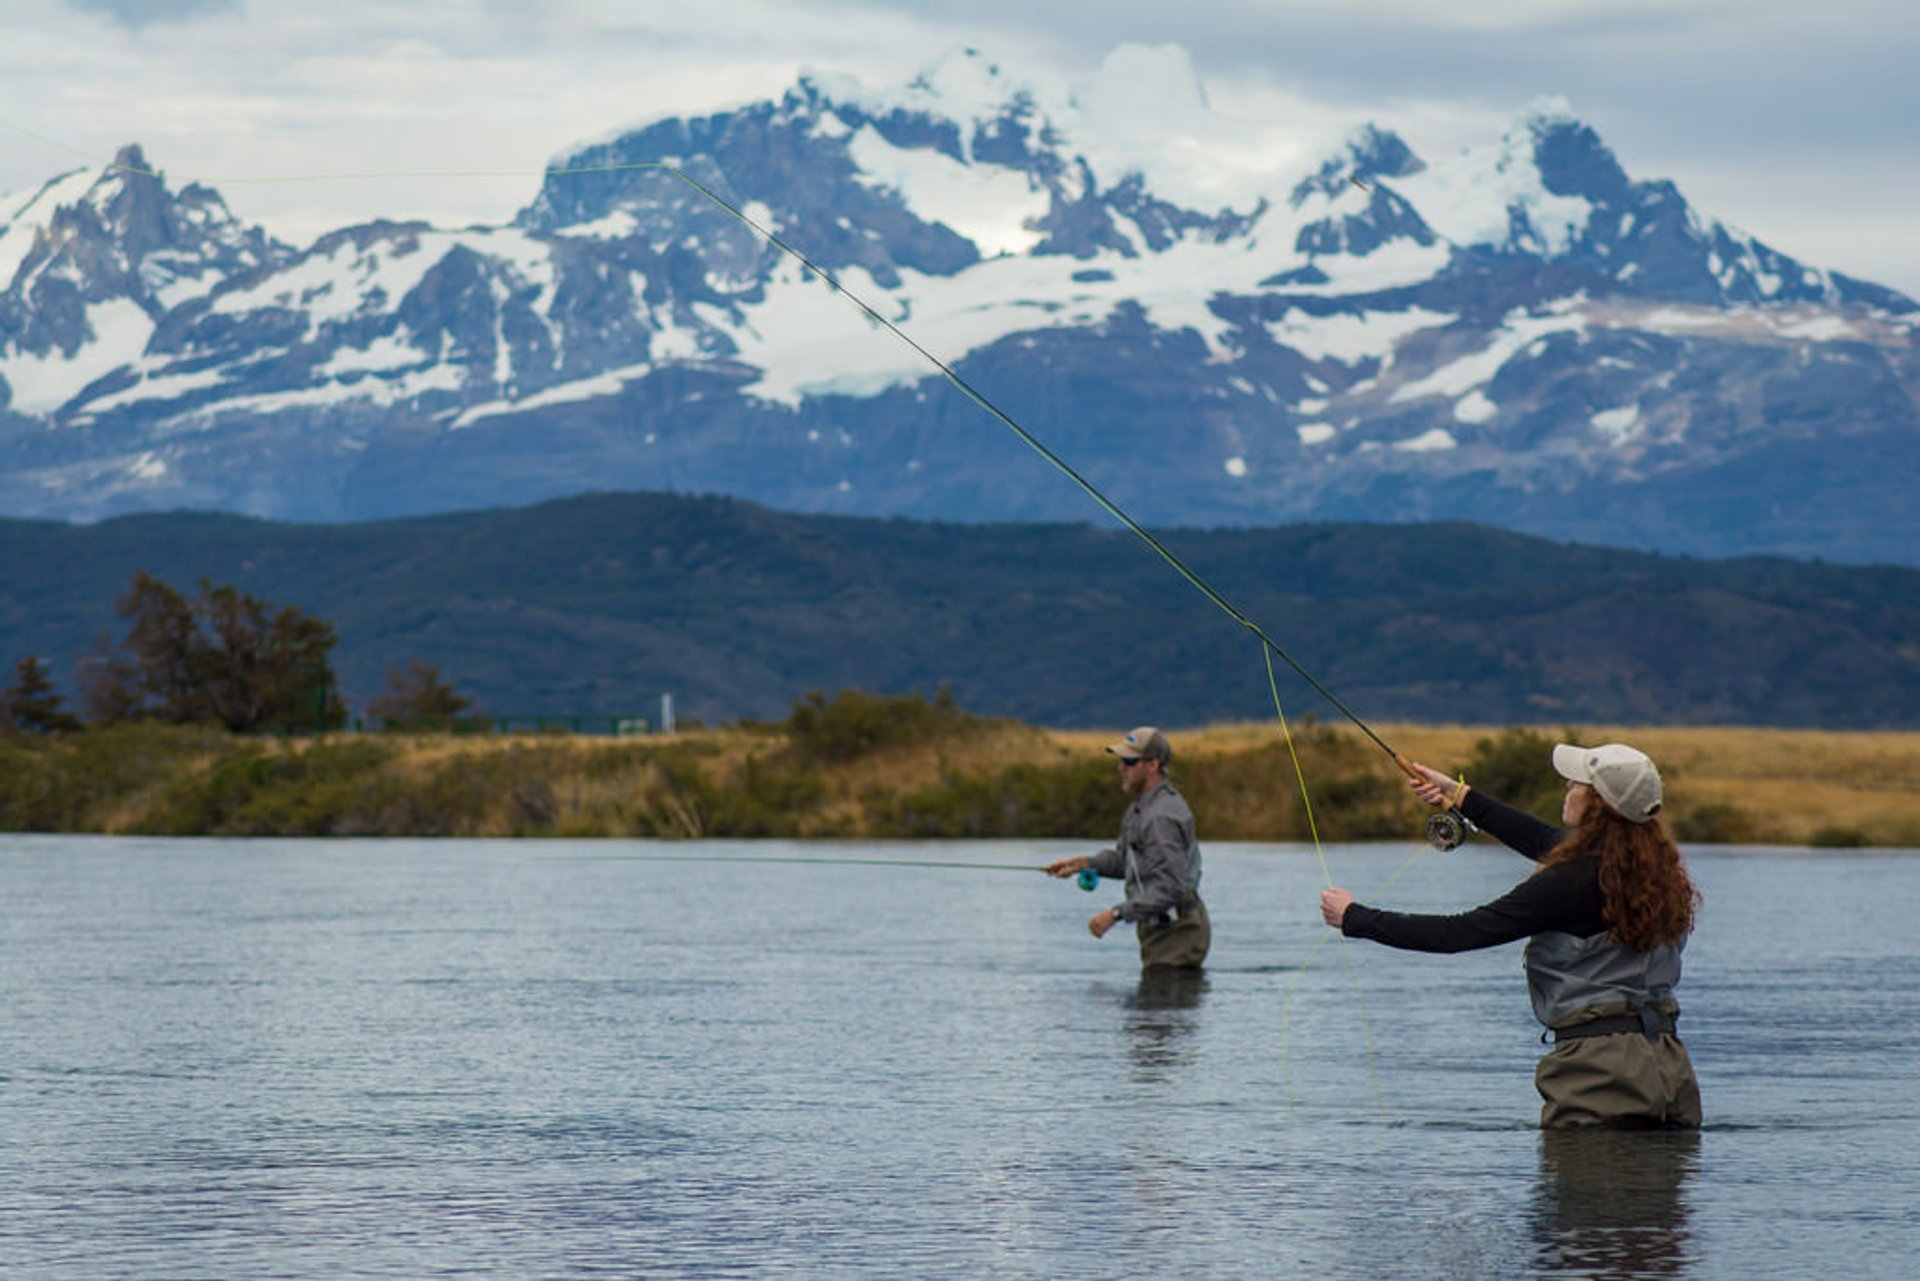 Fishing in Chile 2020 - Best Time